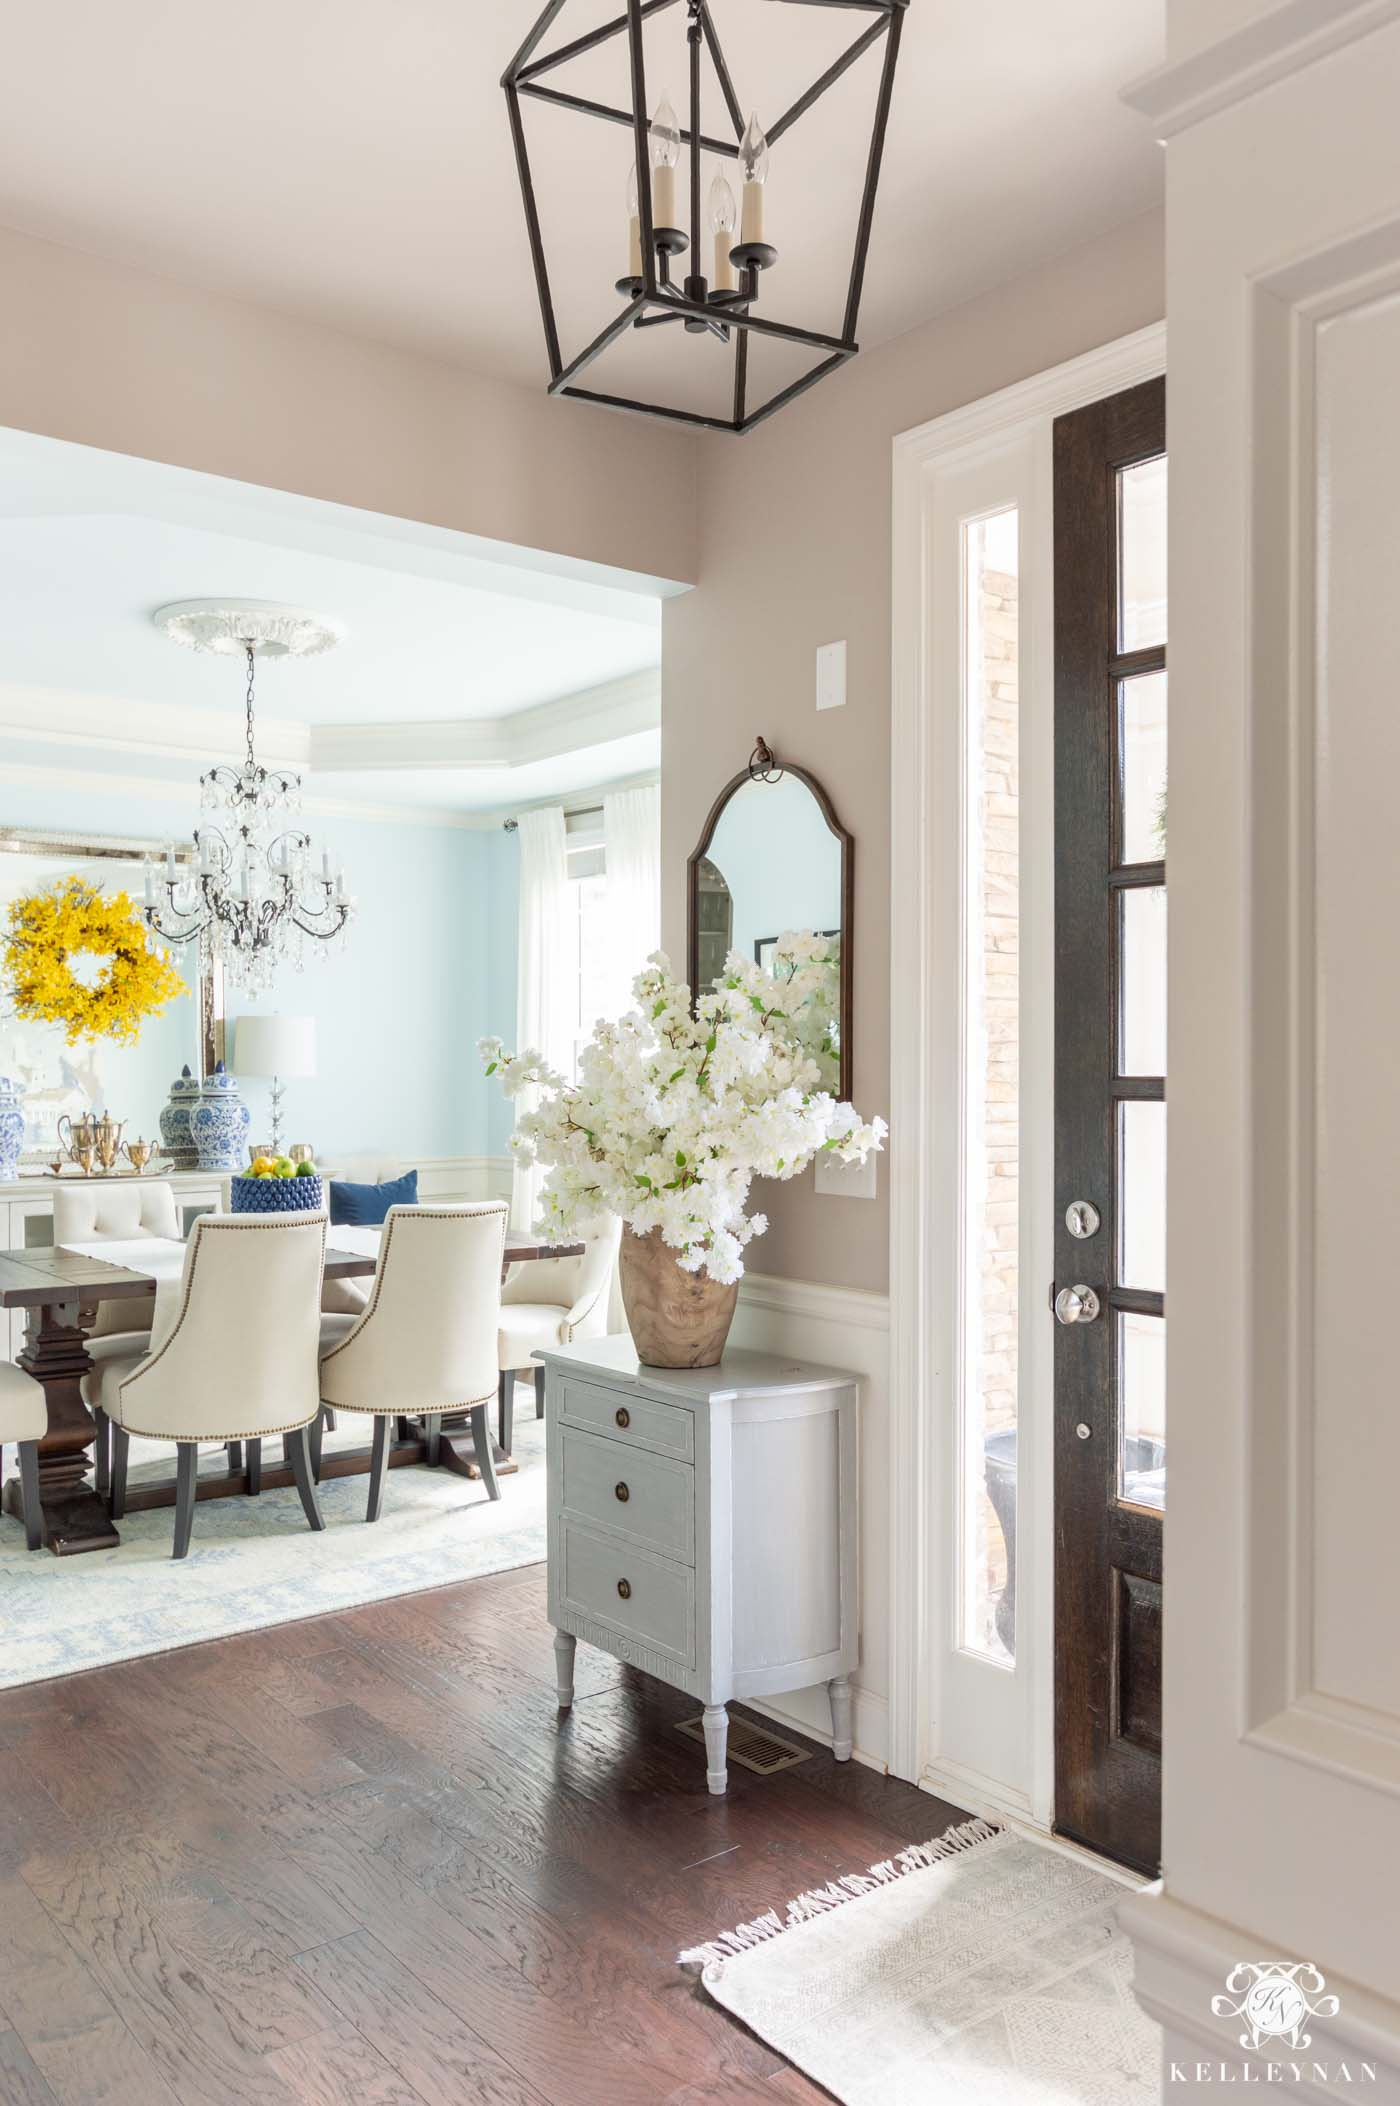 Spring Home Decorating Ideas with a Fresh Color Scheme